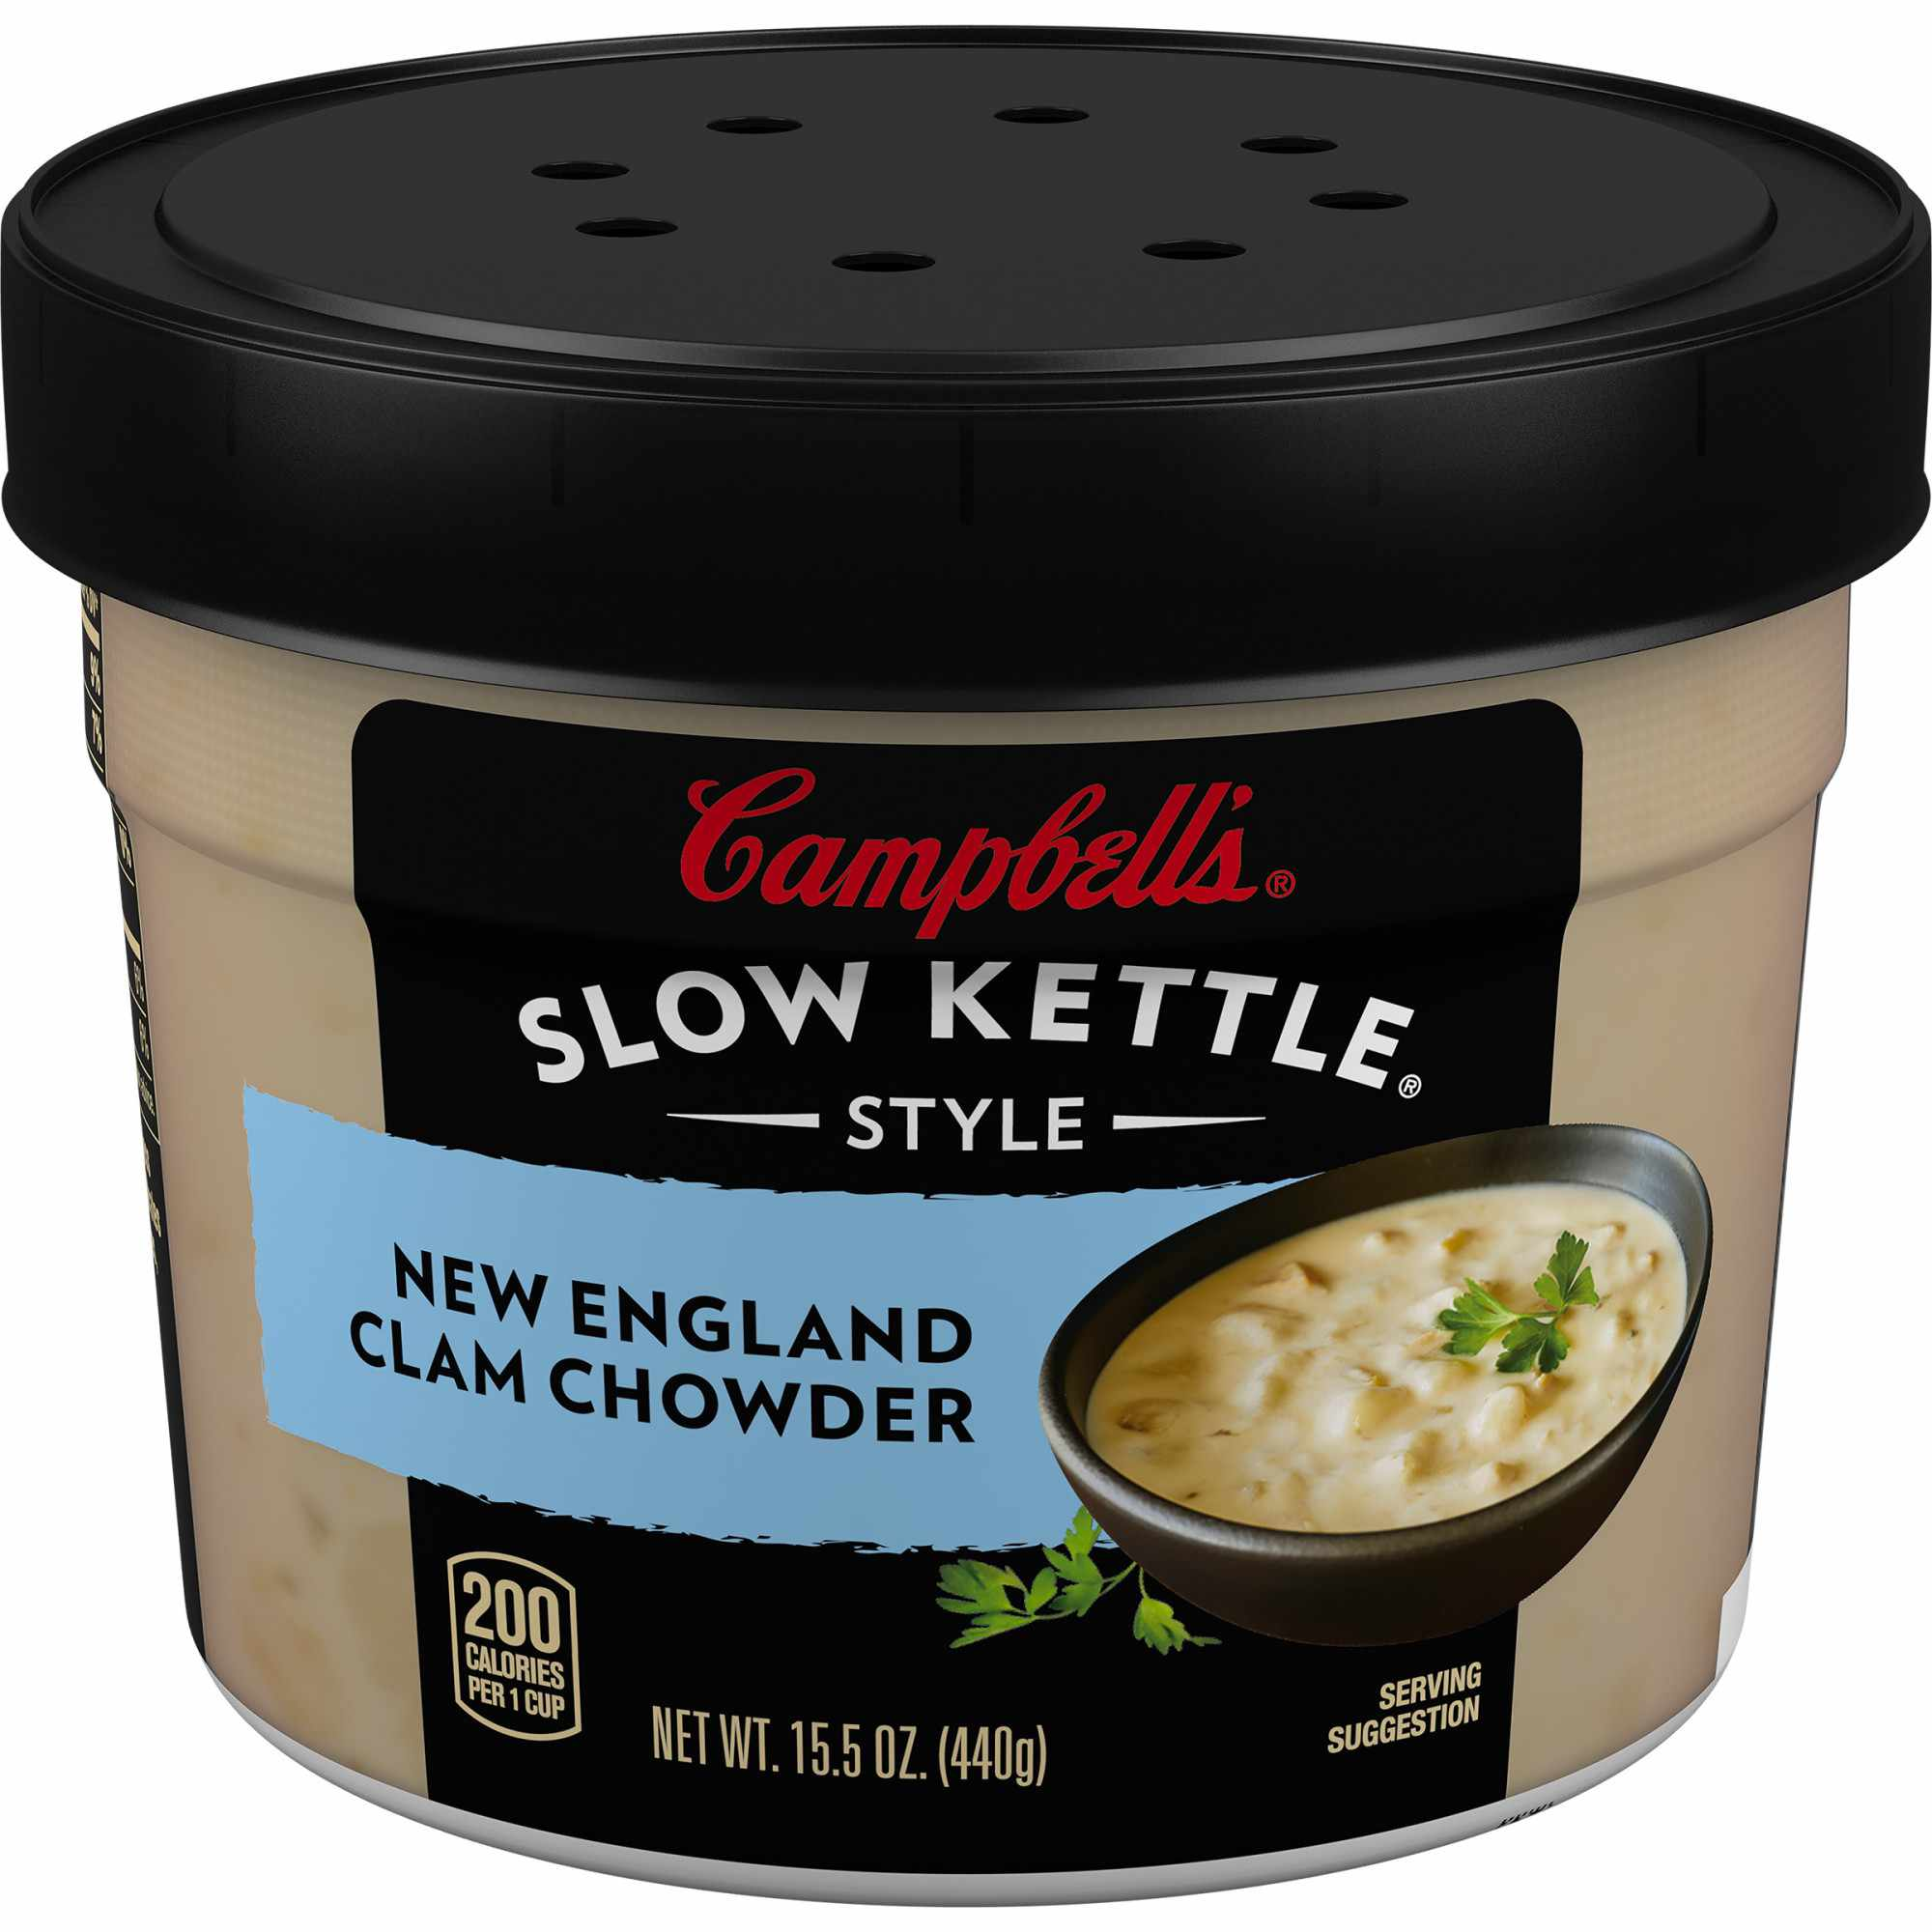 campbells-slow-kettle-new-england-clam-chowder